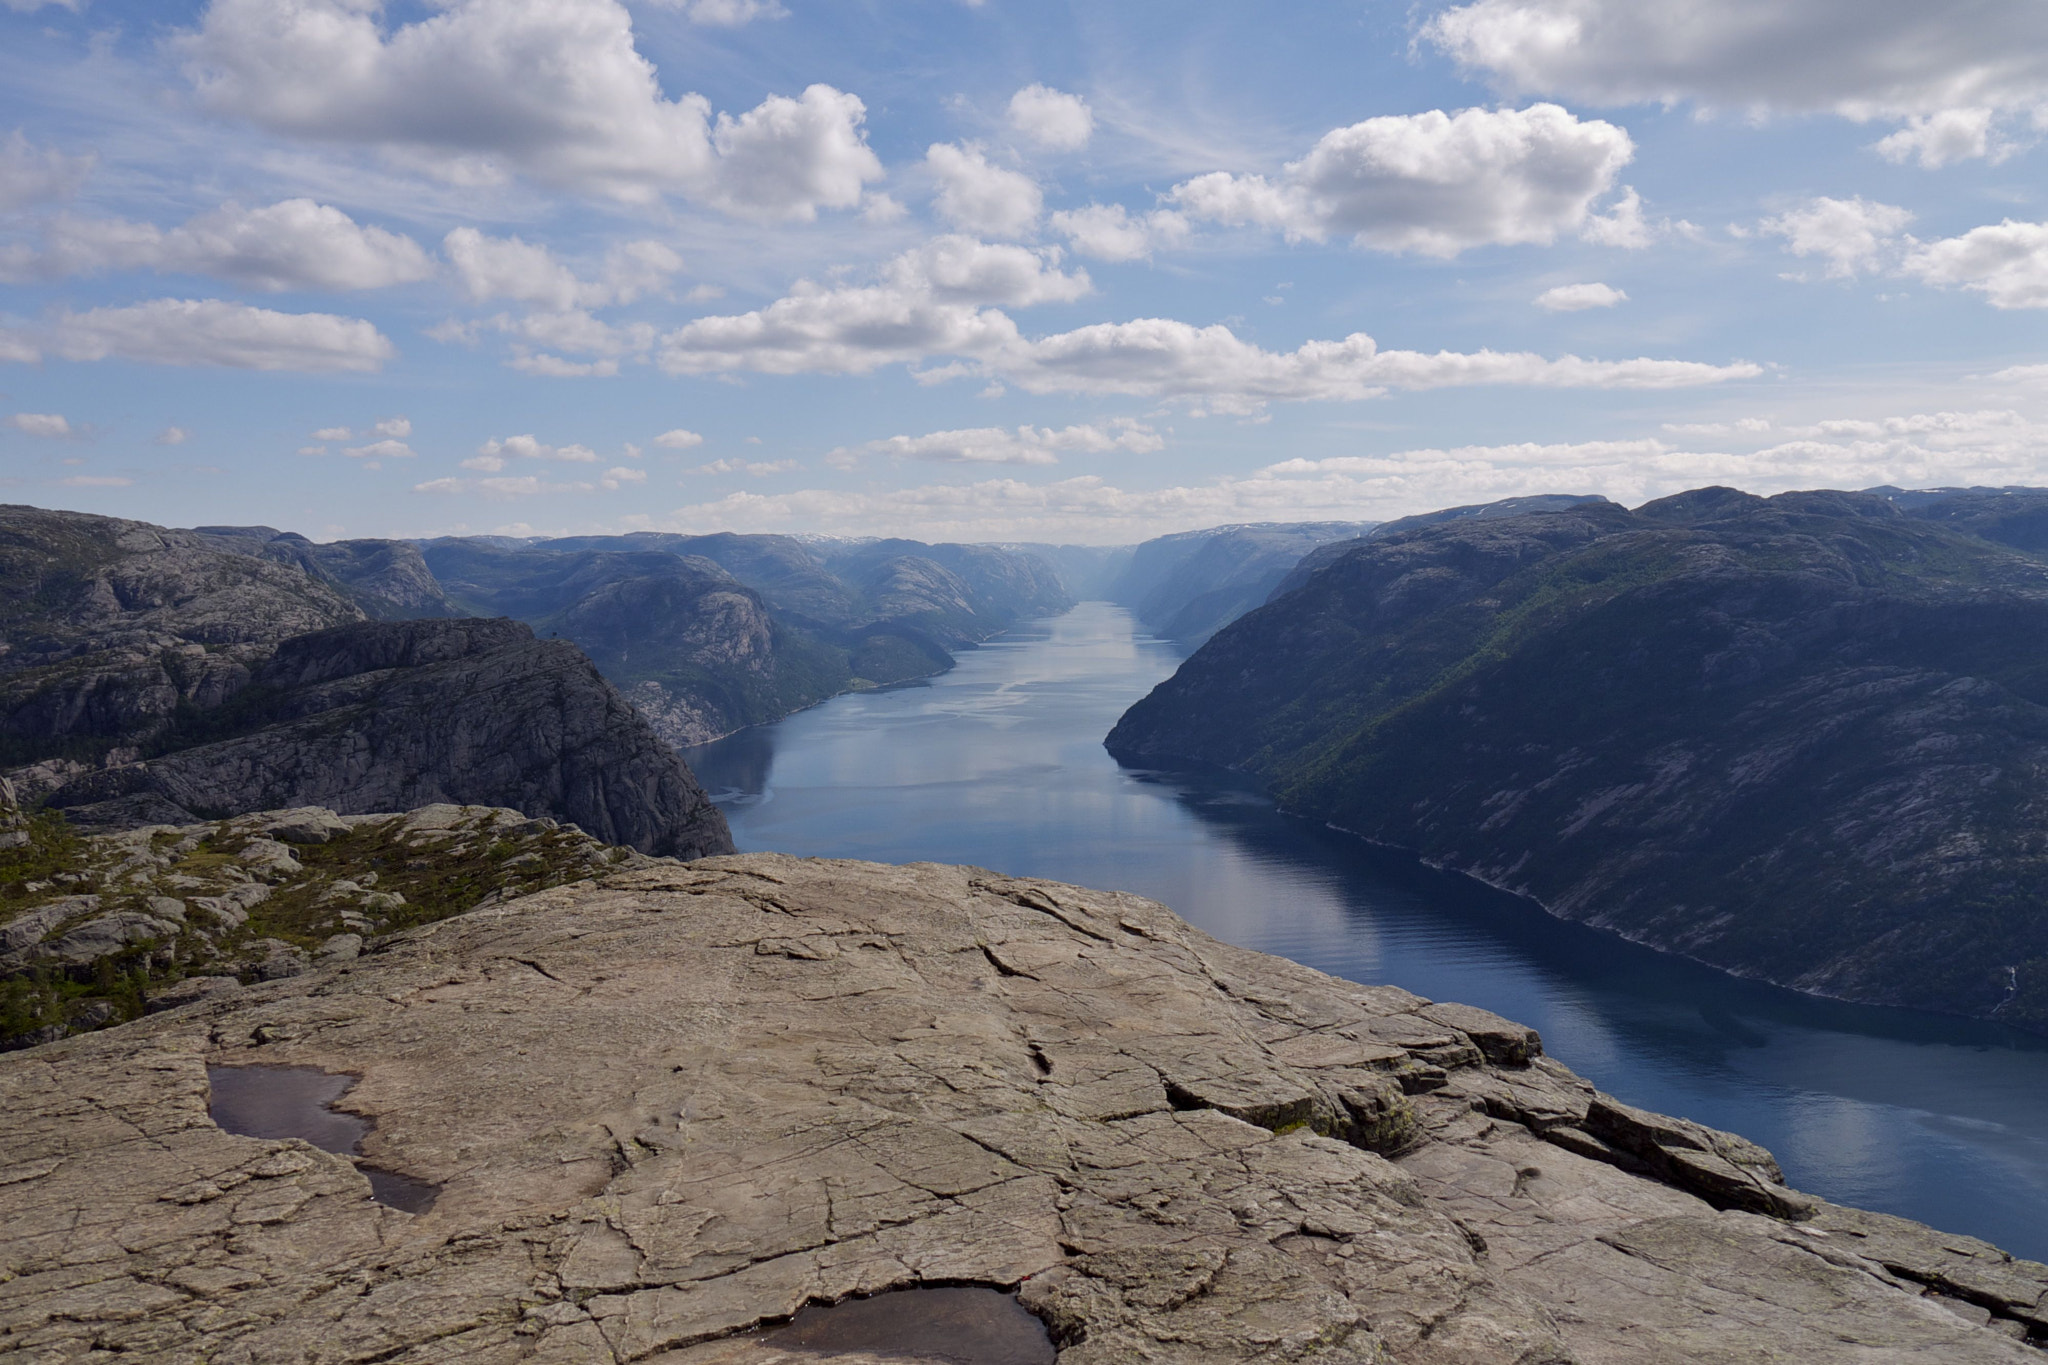 Photograph Preikestolen Norway by Stephan H. on 500px